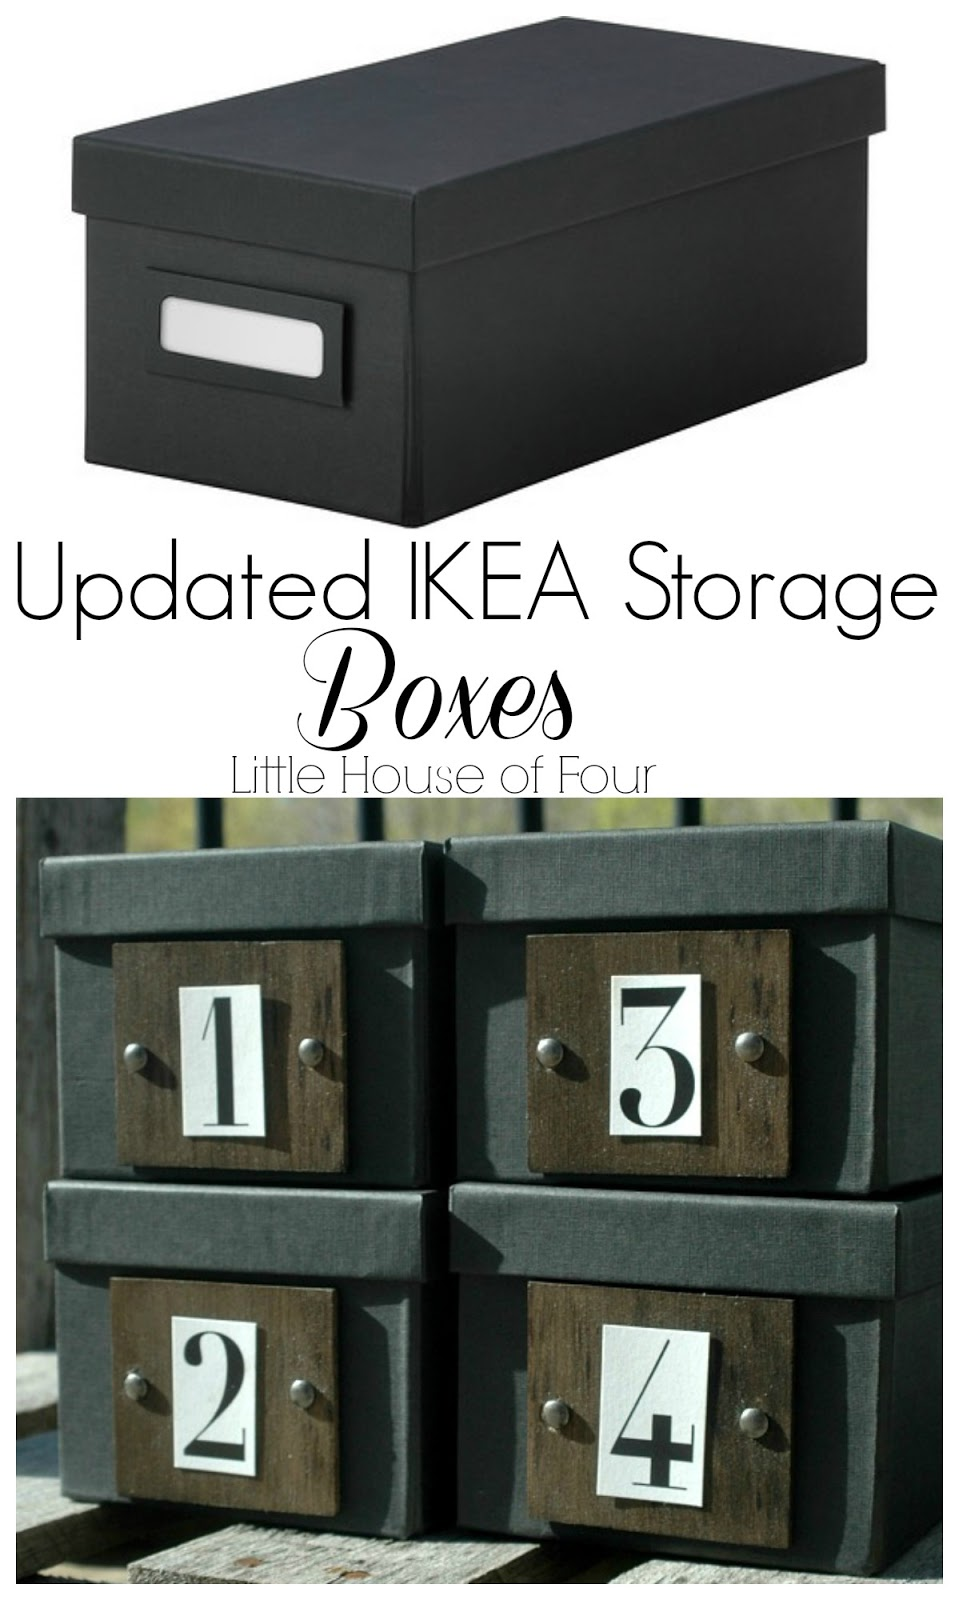 Updated IKEA Storage Boxes